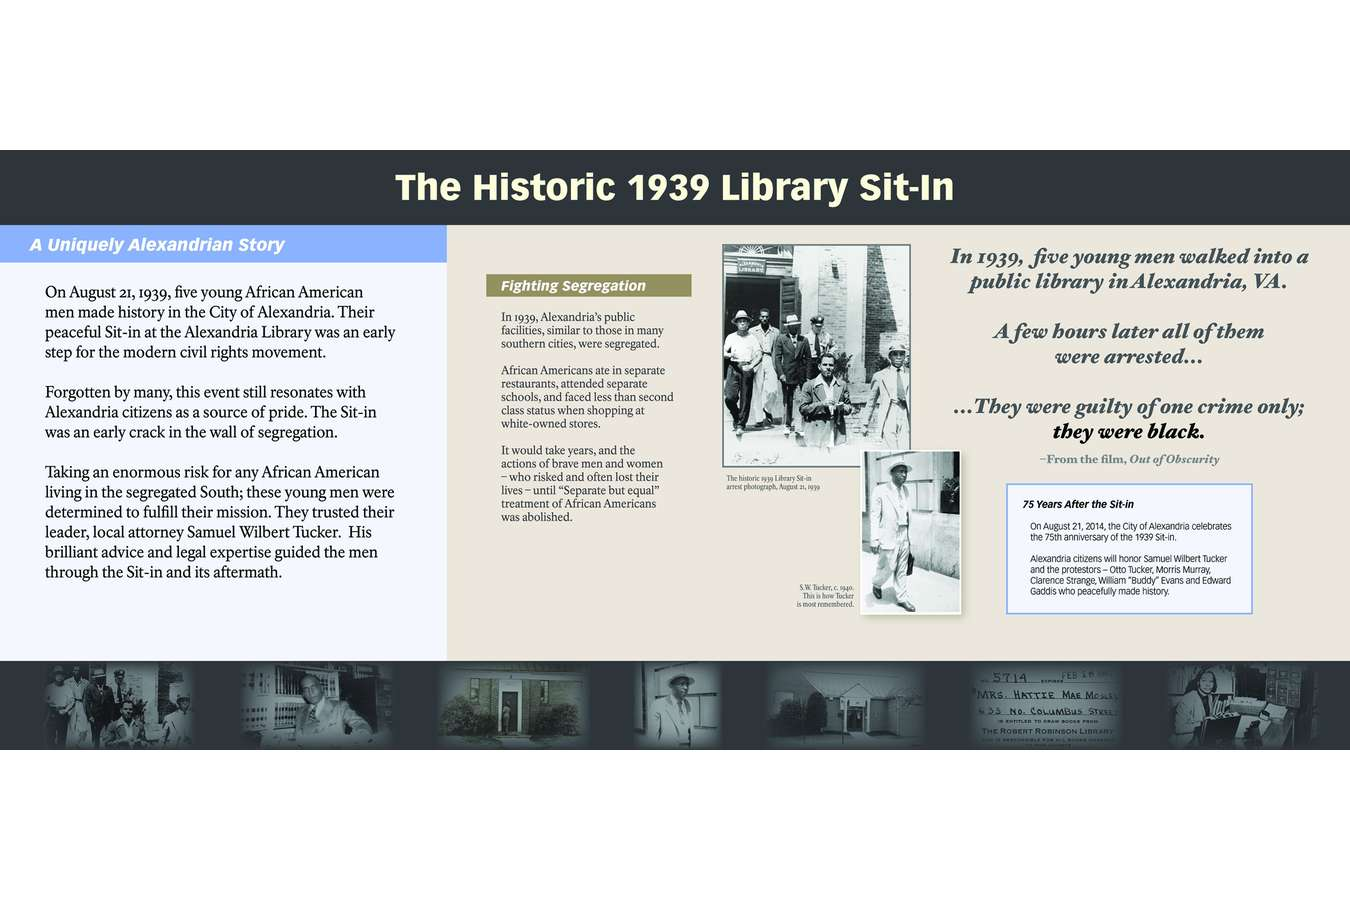 3 ABHM Sitin P1 : The Alexandria Library Sit-in was an early crack in the wall of segregation